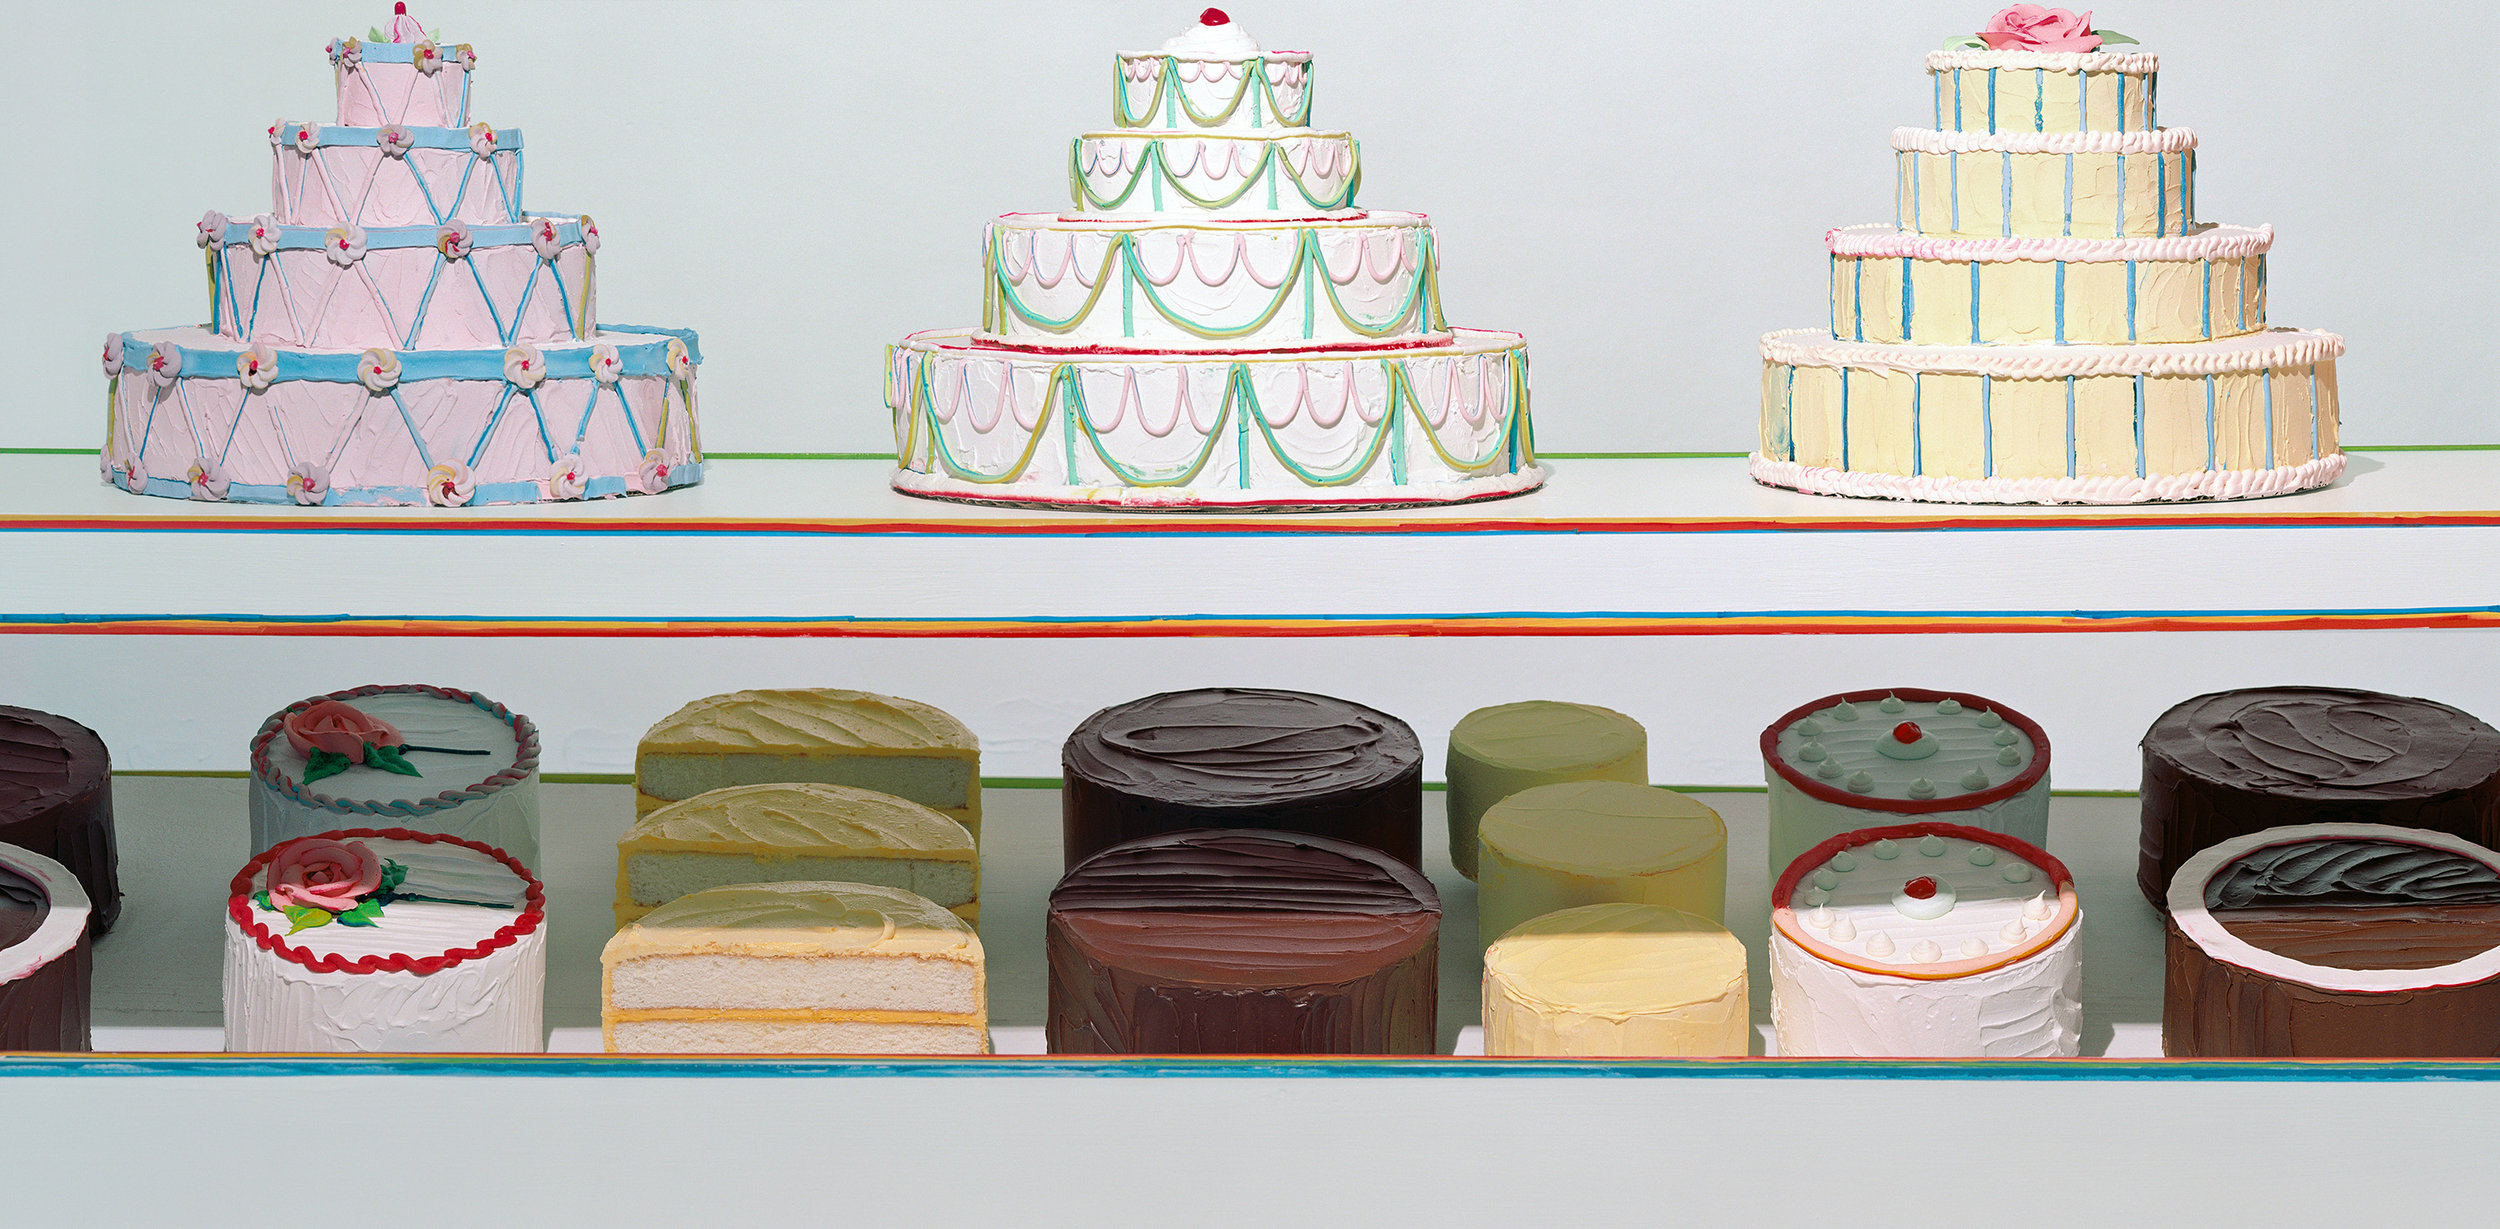 Sharon Core,  Cake Counter , 2003, C-print, 37 x 72 inches. Image courtesy collection of Peter Norton.